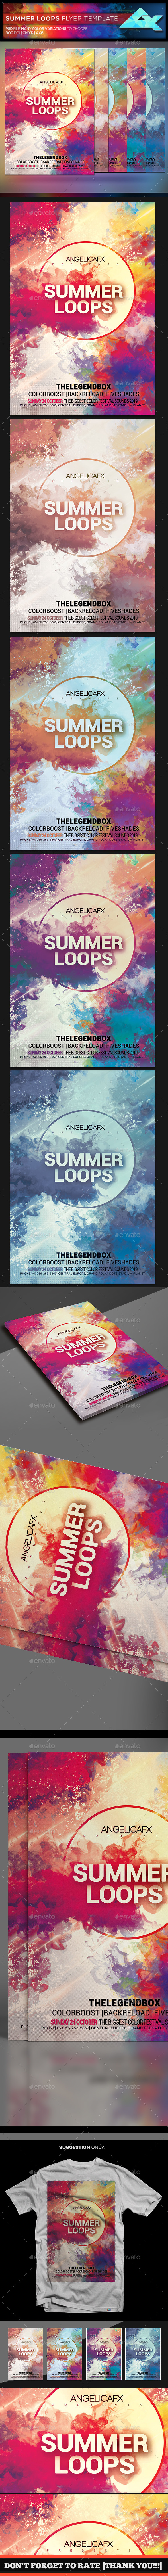 Summer Loops Flyer Template - Flyers Print Templates